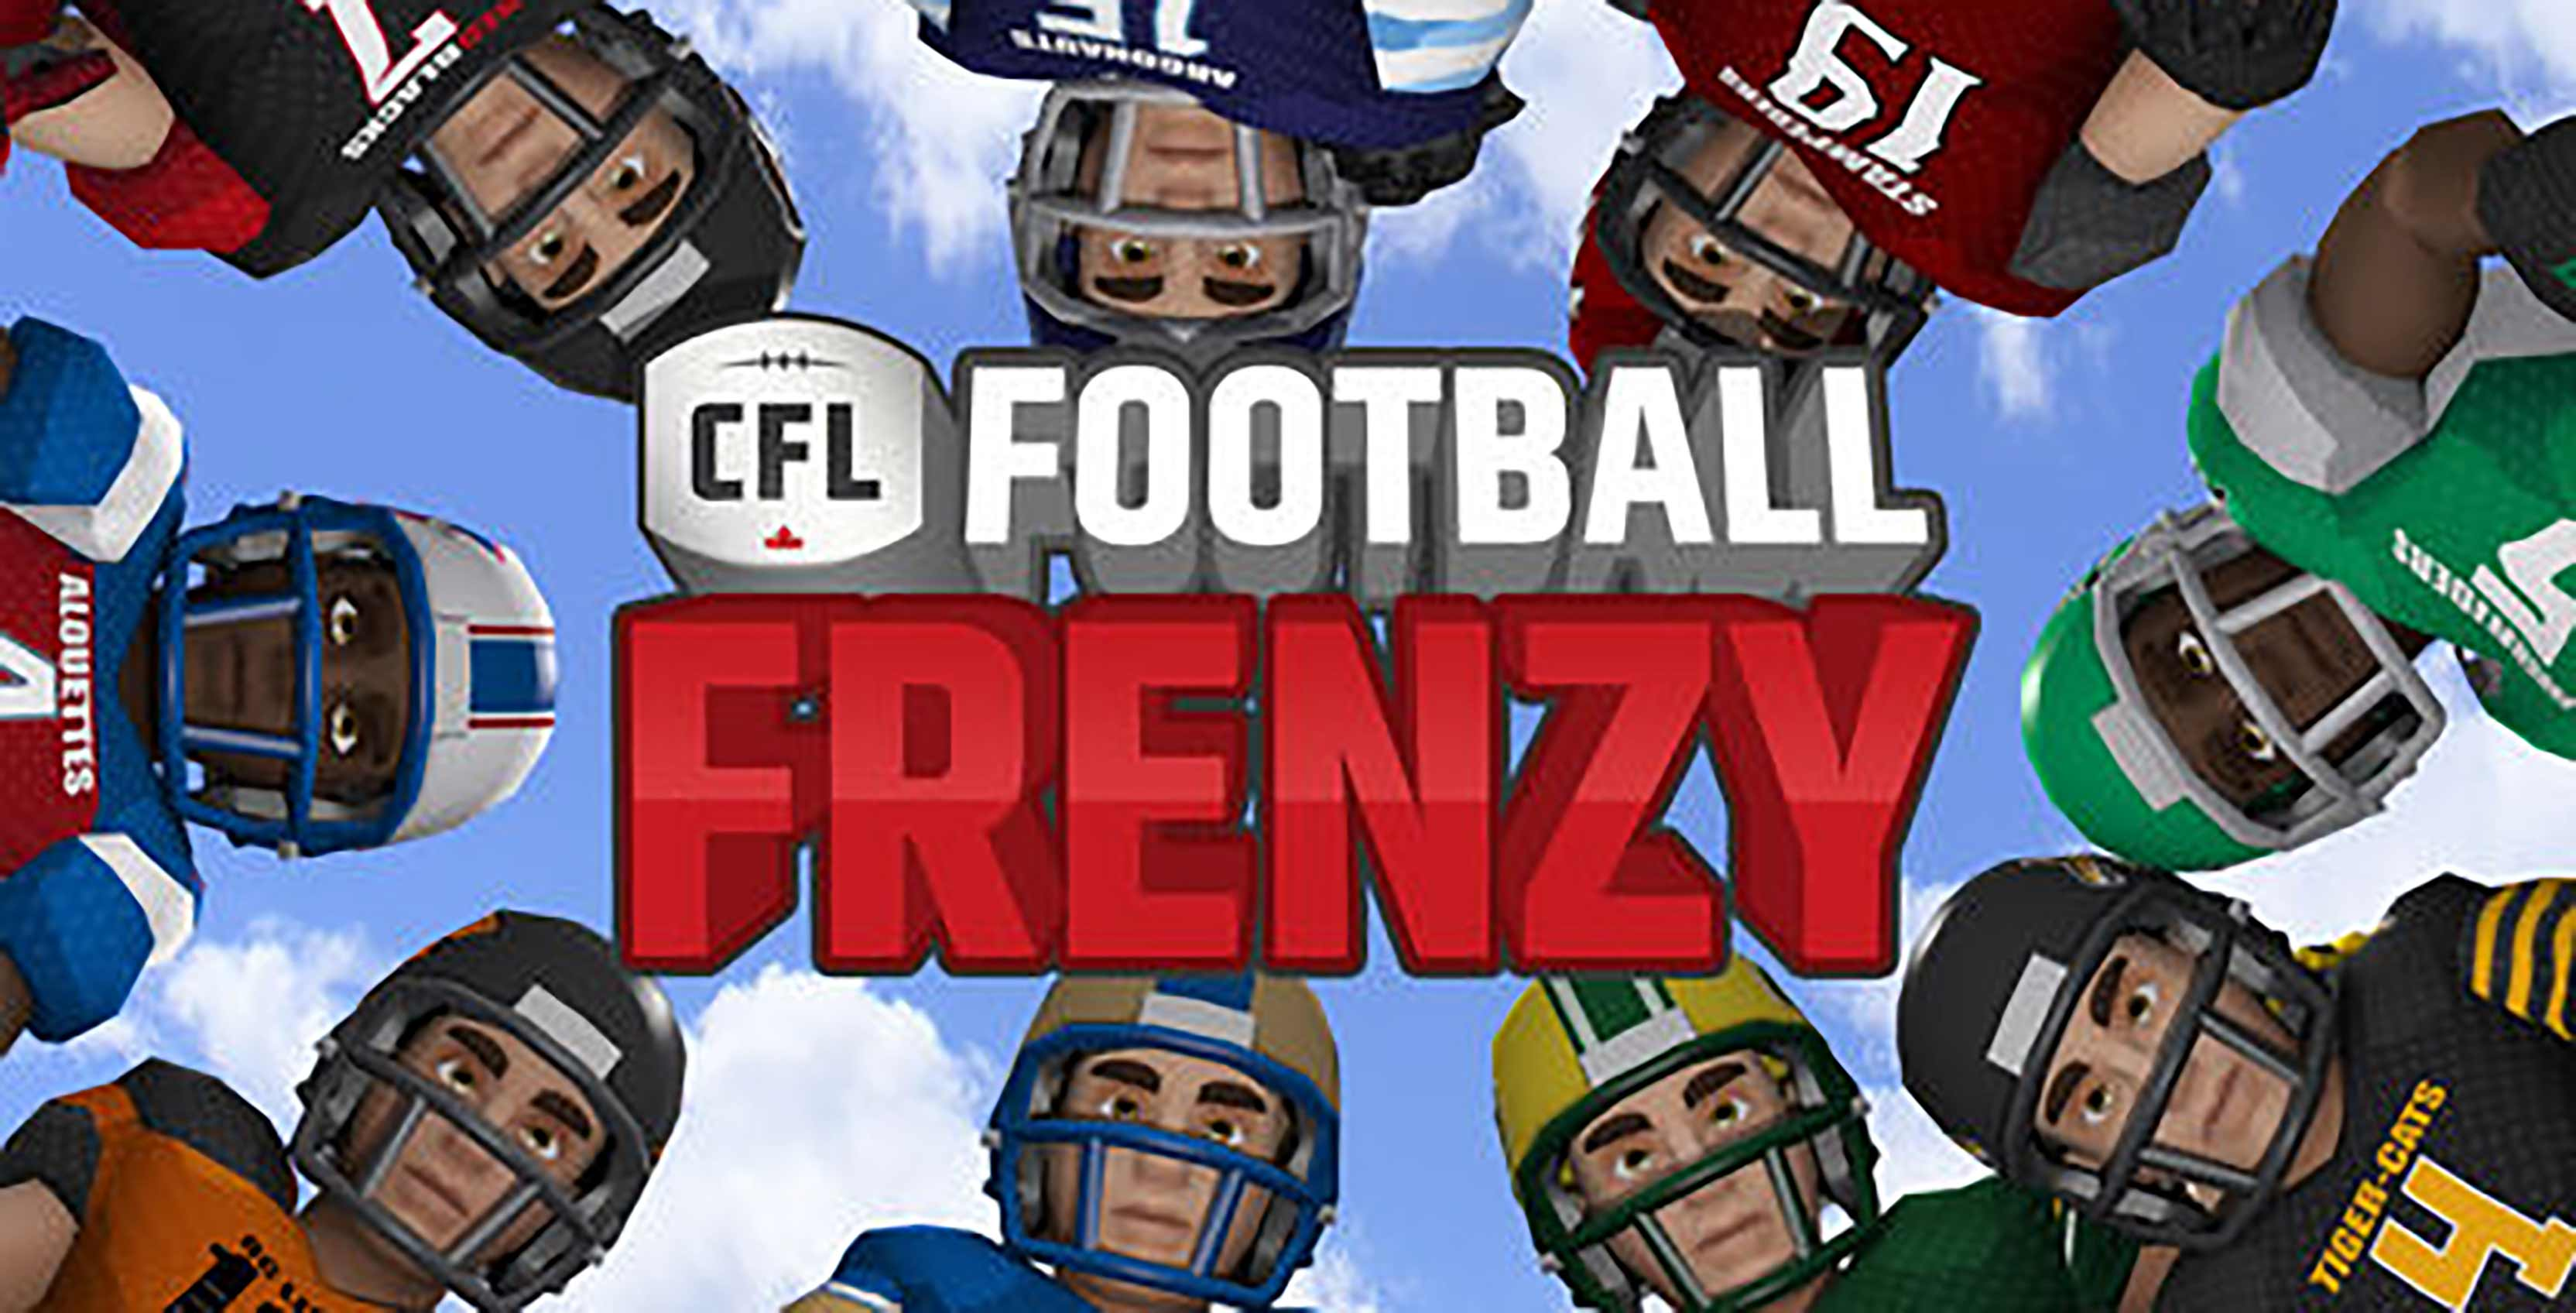 CFL football frenzy which features football avatars